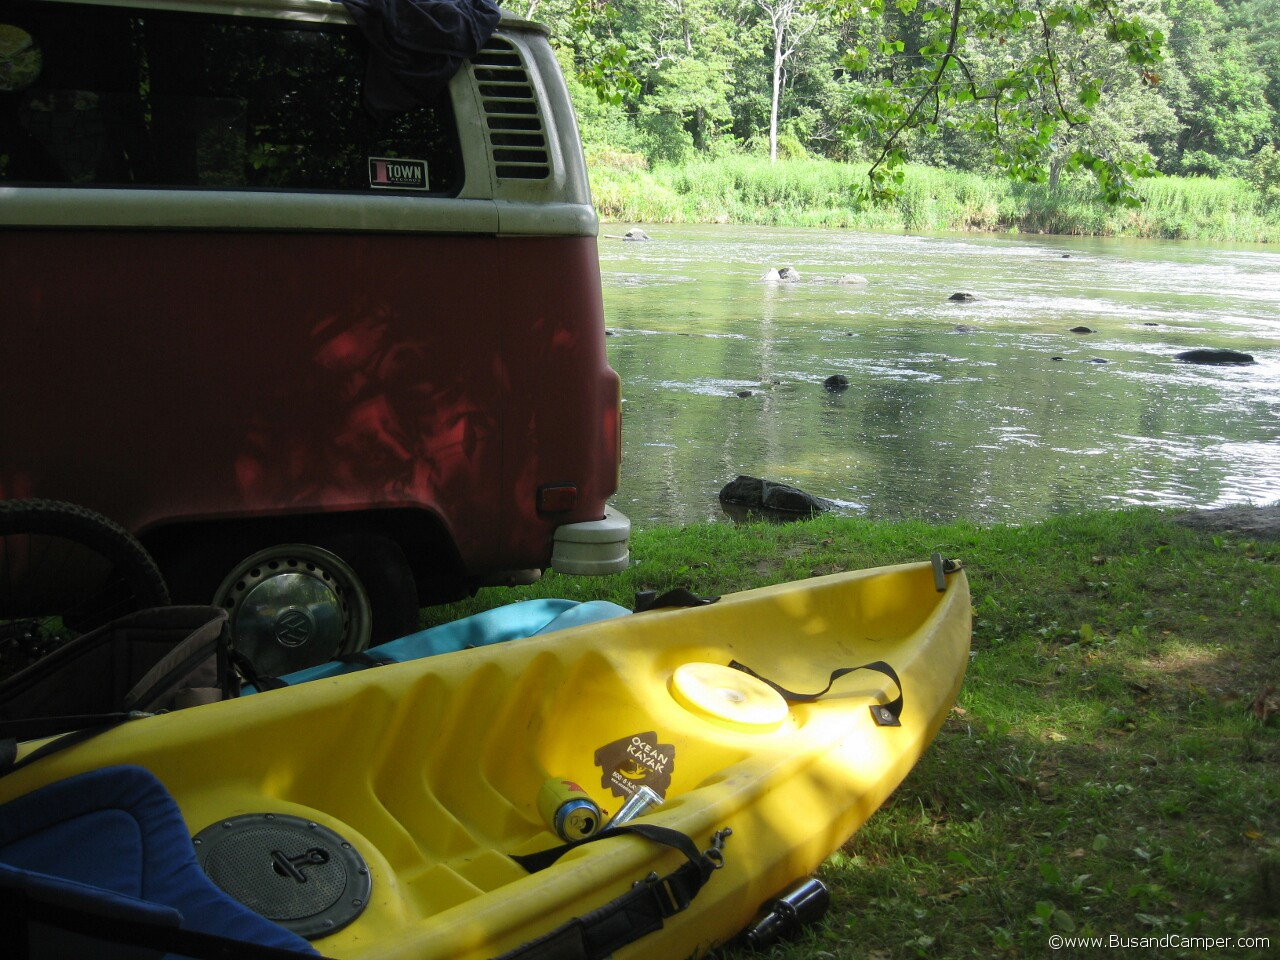 Canoe and Beer at the Campout